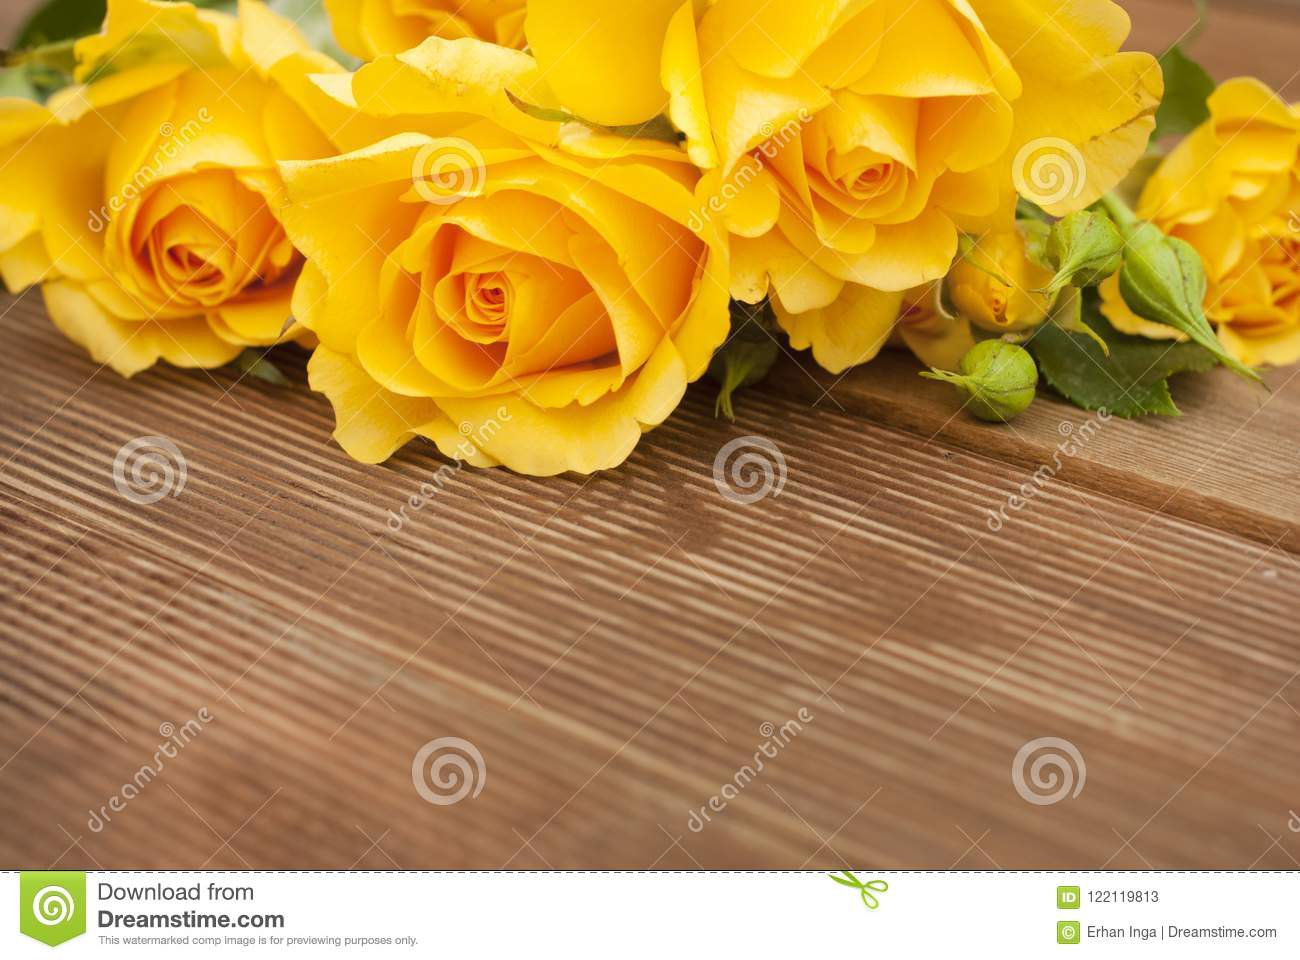 Beautiful Roses Bouquet over Wooden Table. Copy Space. Vintage yeelow flowers.